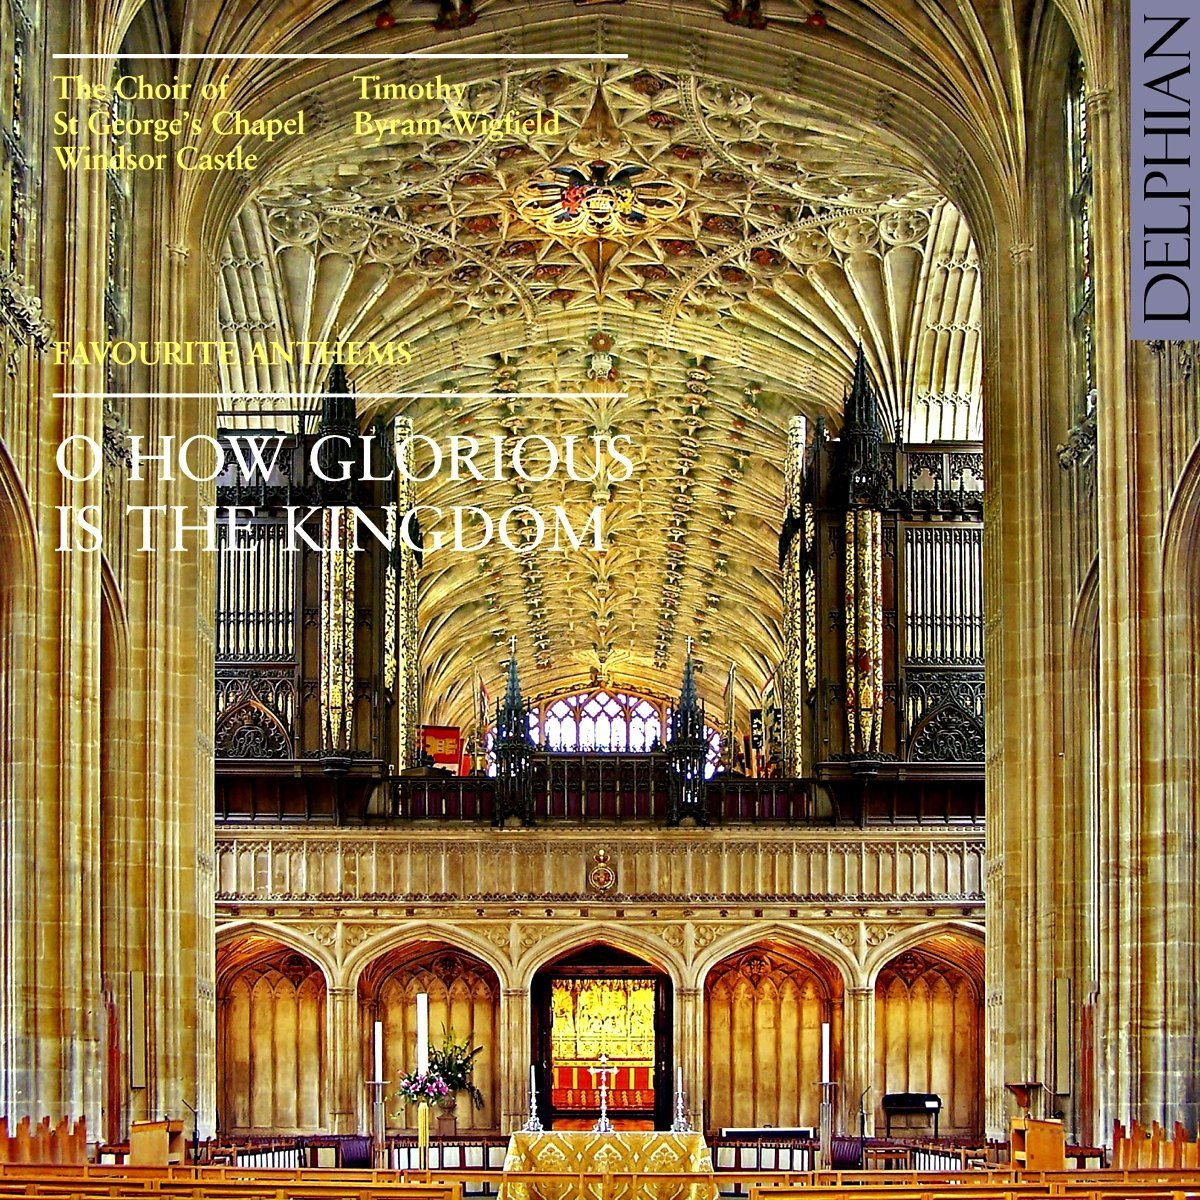 O How Glorious is the Kingdom: Favourite Anthems CD Delphian Records